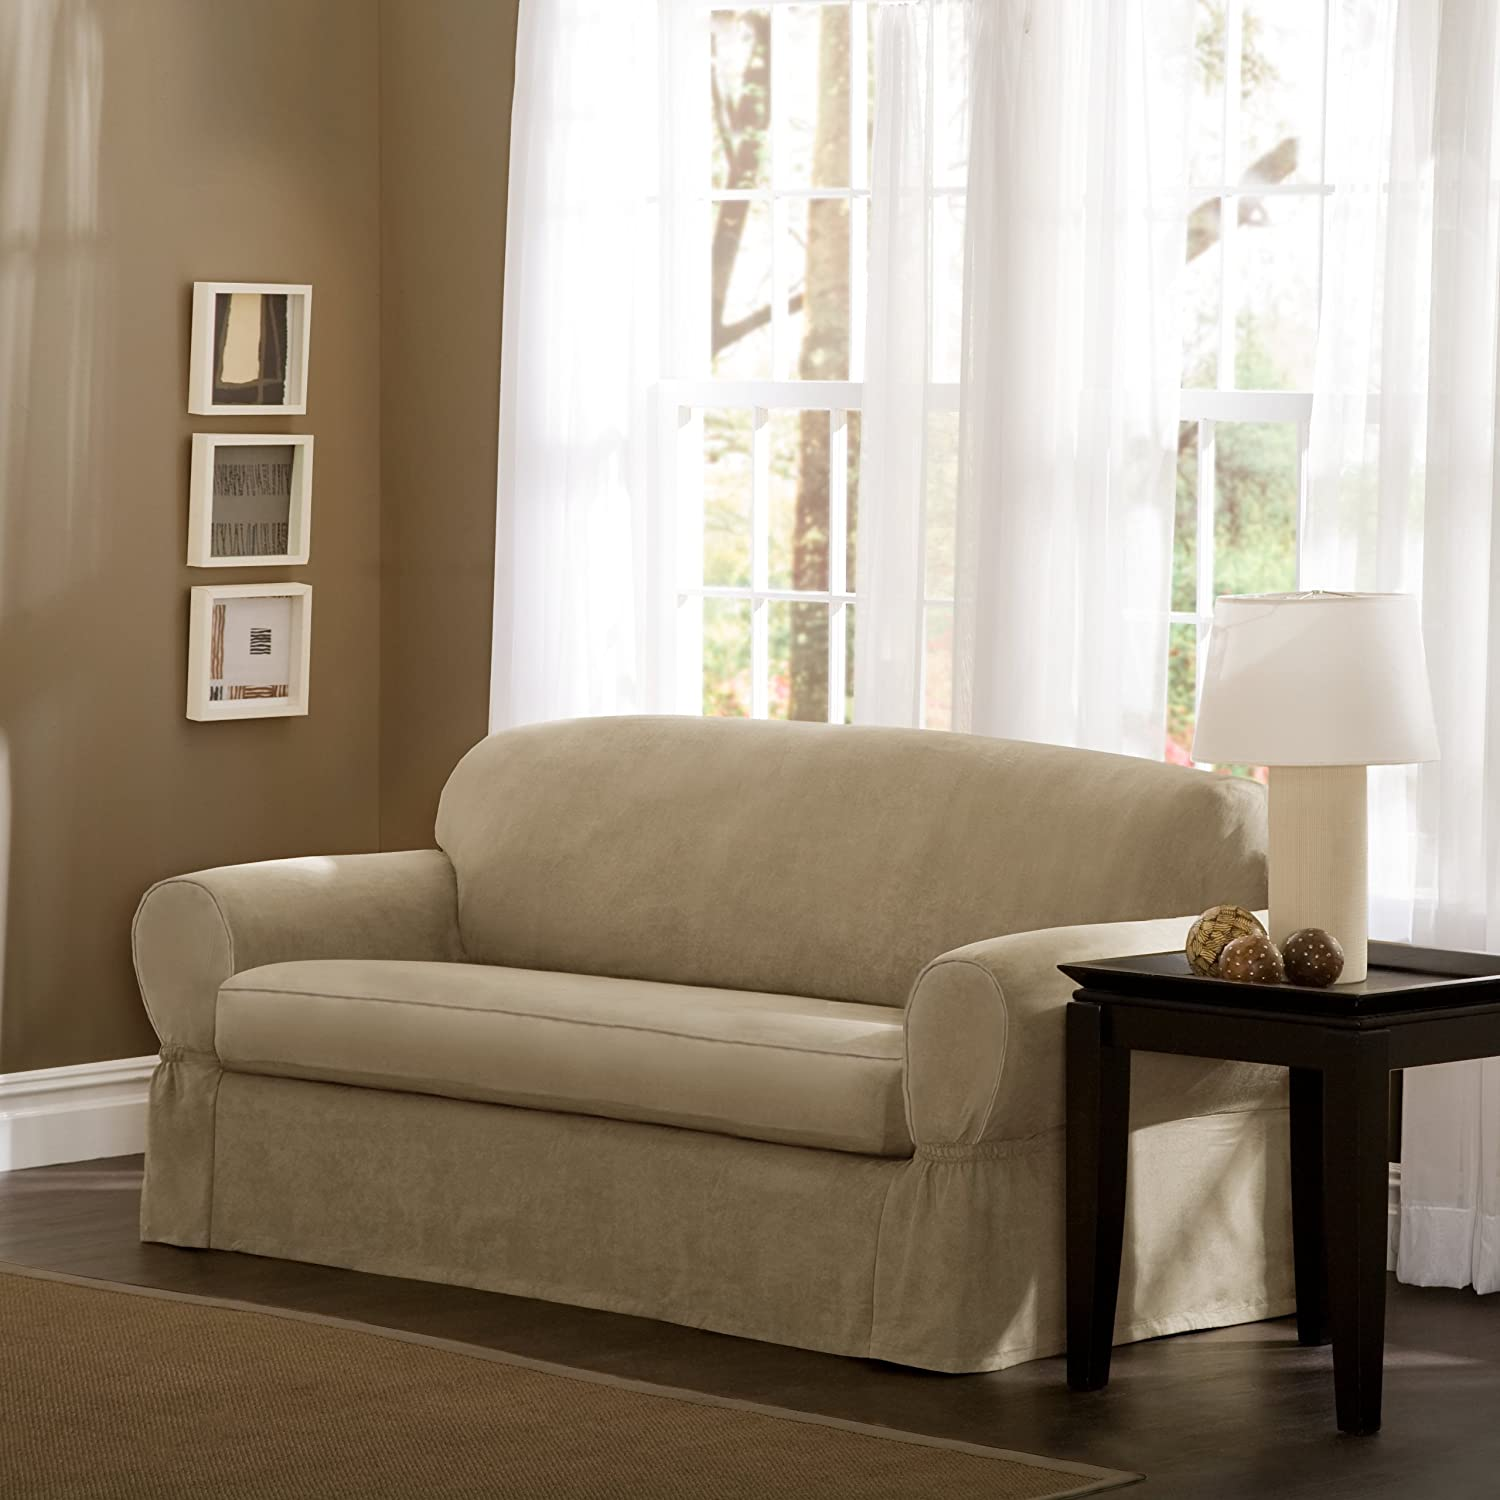 Amazon Maytex Piped Suede 2 Piece Slipcover Sofa Flax Home